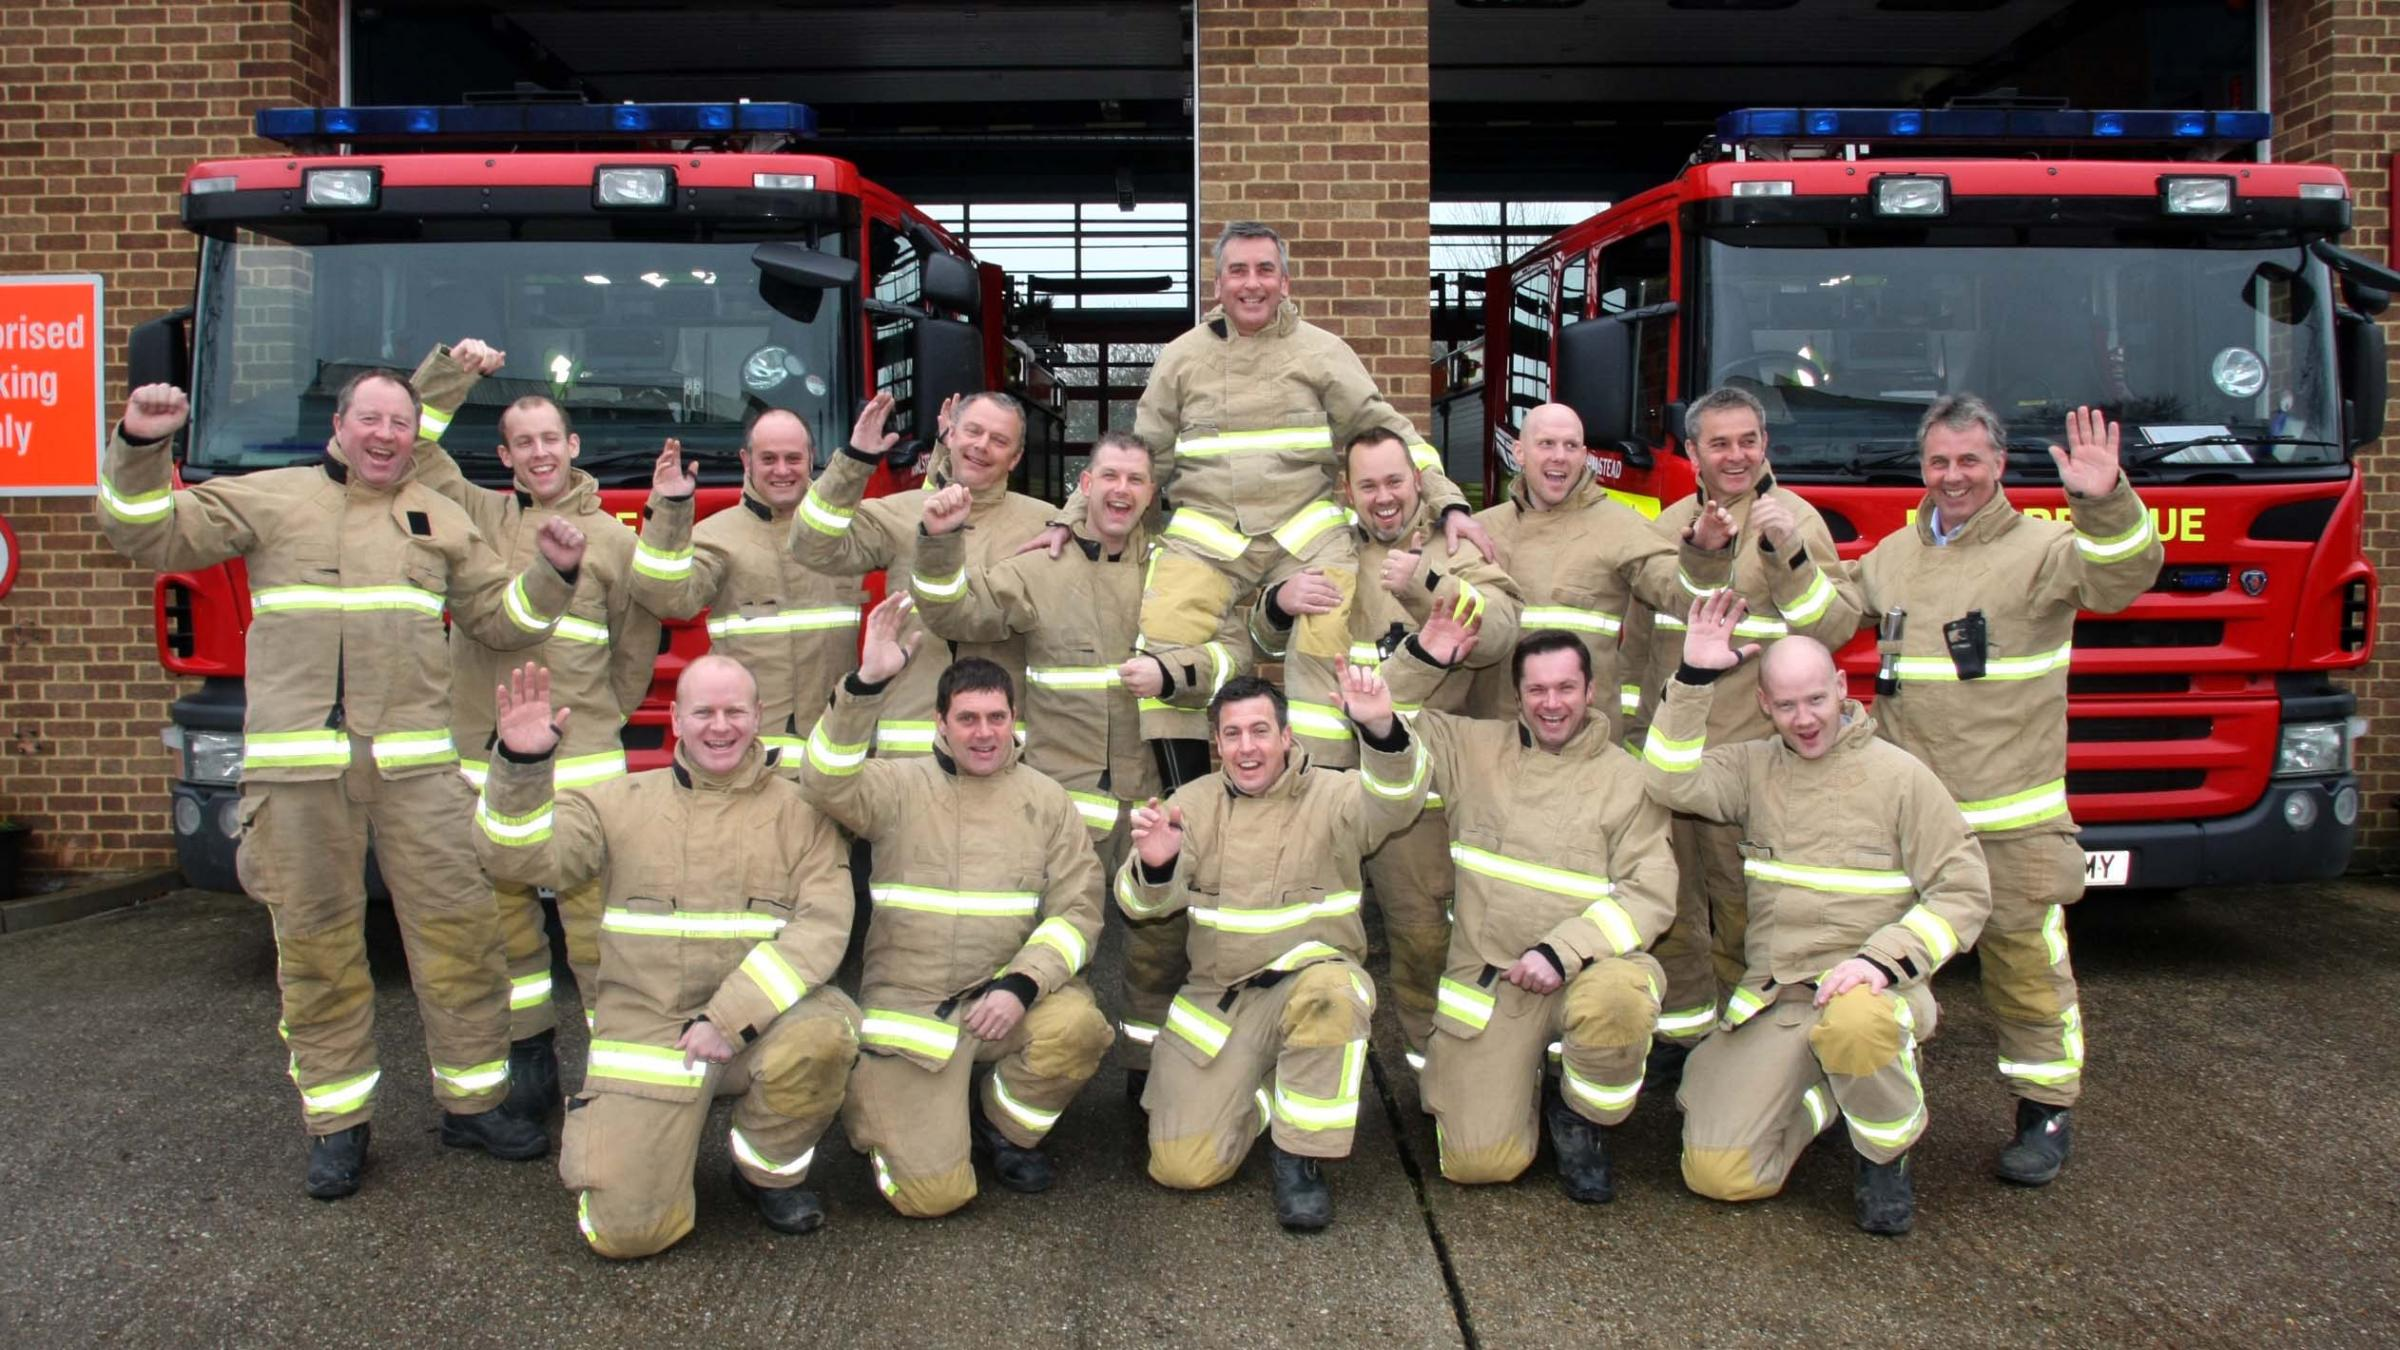 Peter Robertson hangs up his helmet after 30 years' service at Halstead Fire Station.